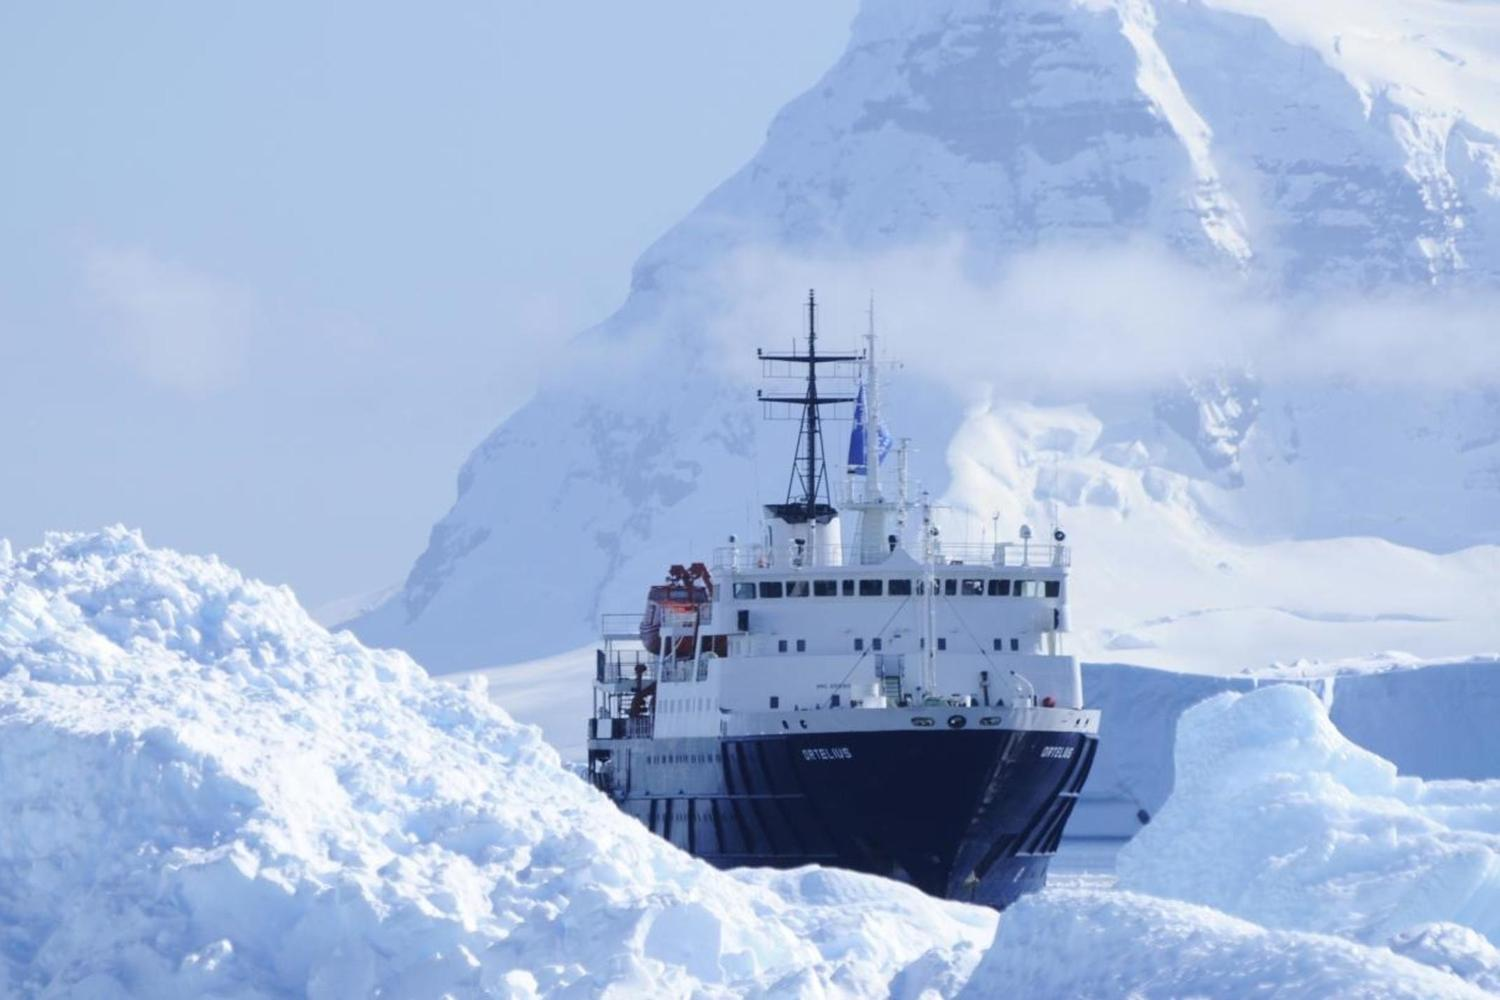 Ortelius ship in Antarctica